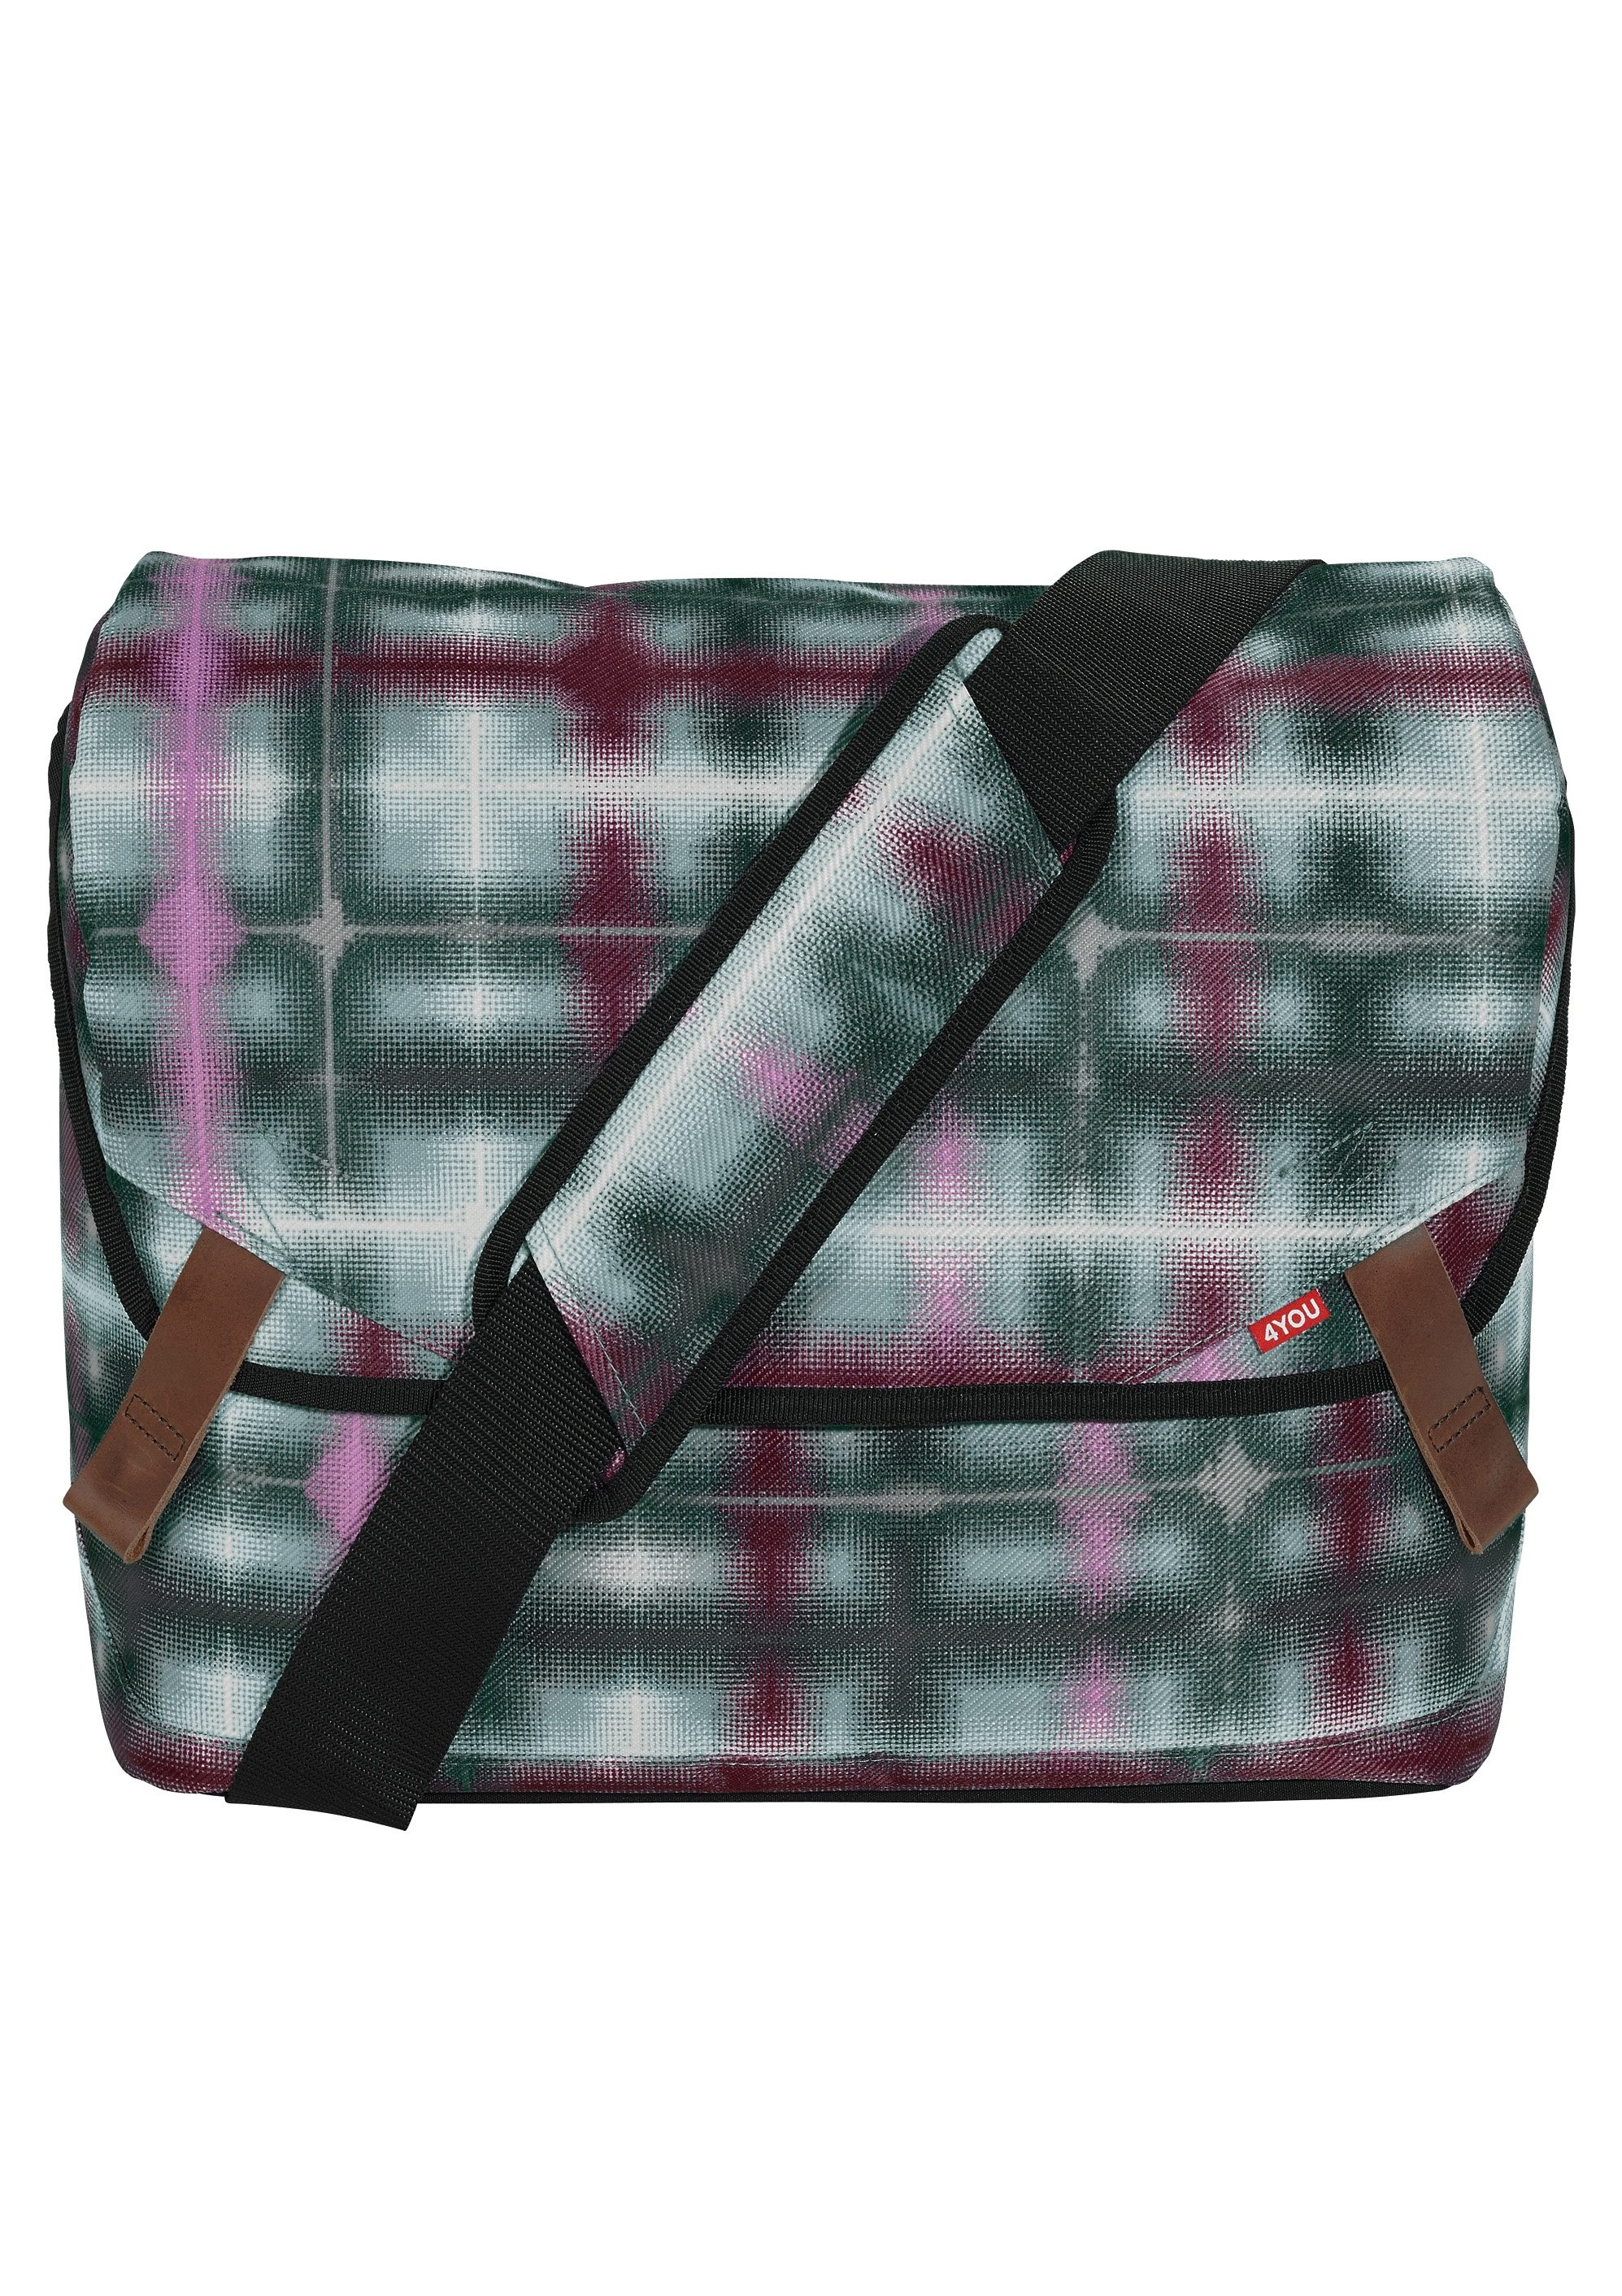 4YOU Umhängetasche mit Laptopfach, Raster Squares, »Messengerbag«